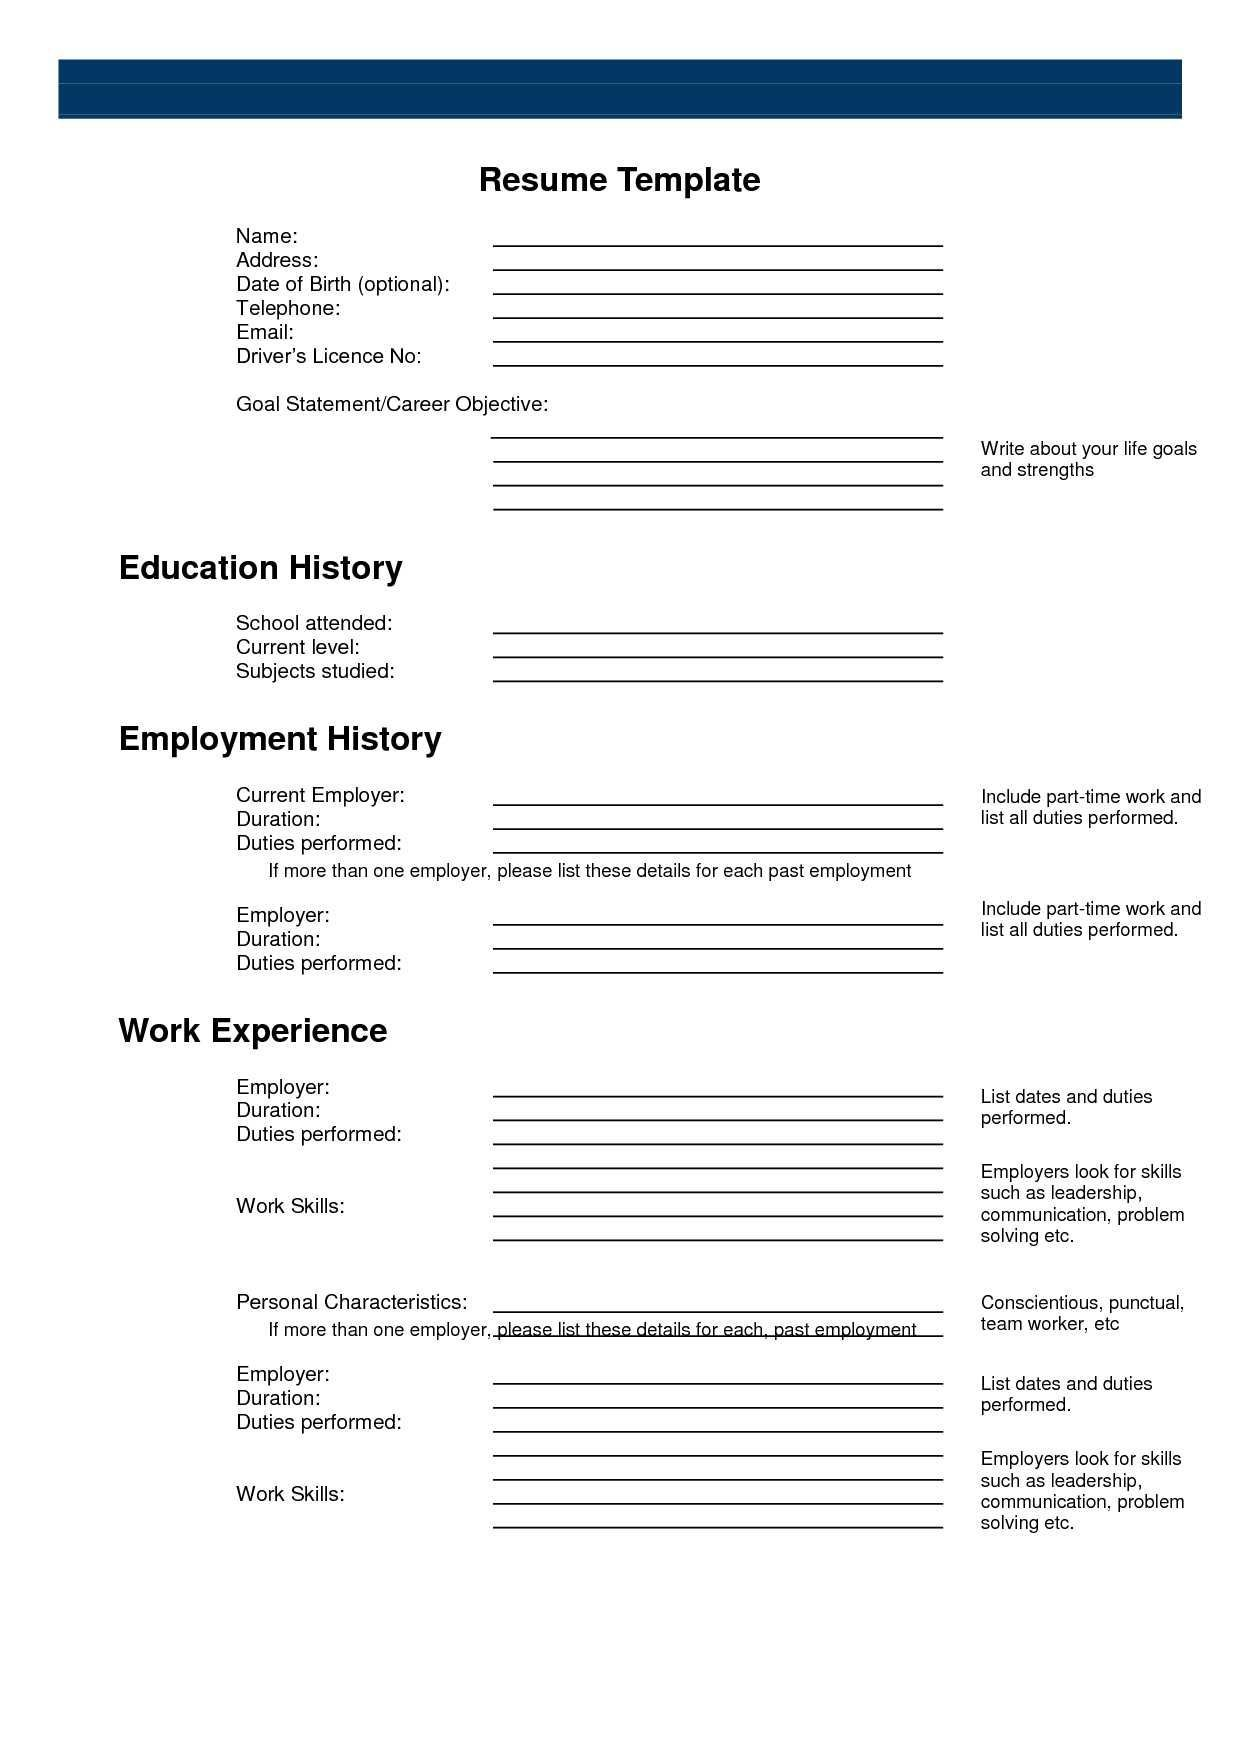 Pin By Anishfeds On Resumes Sample Resume Resume Resume Builder